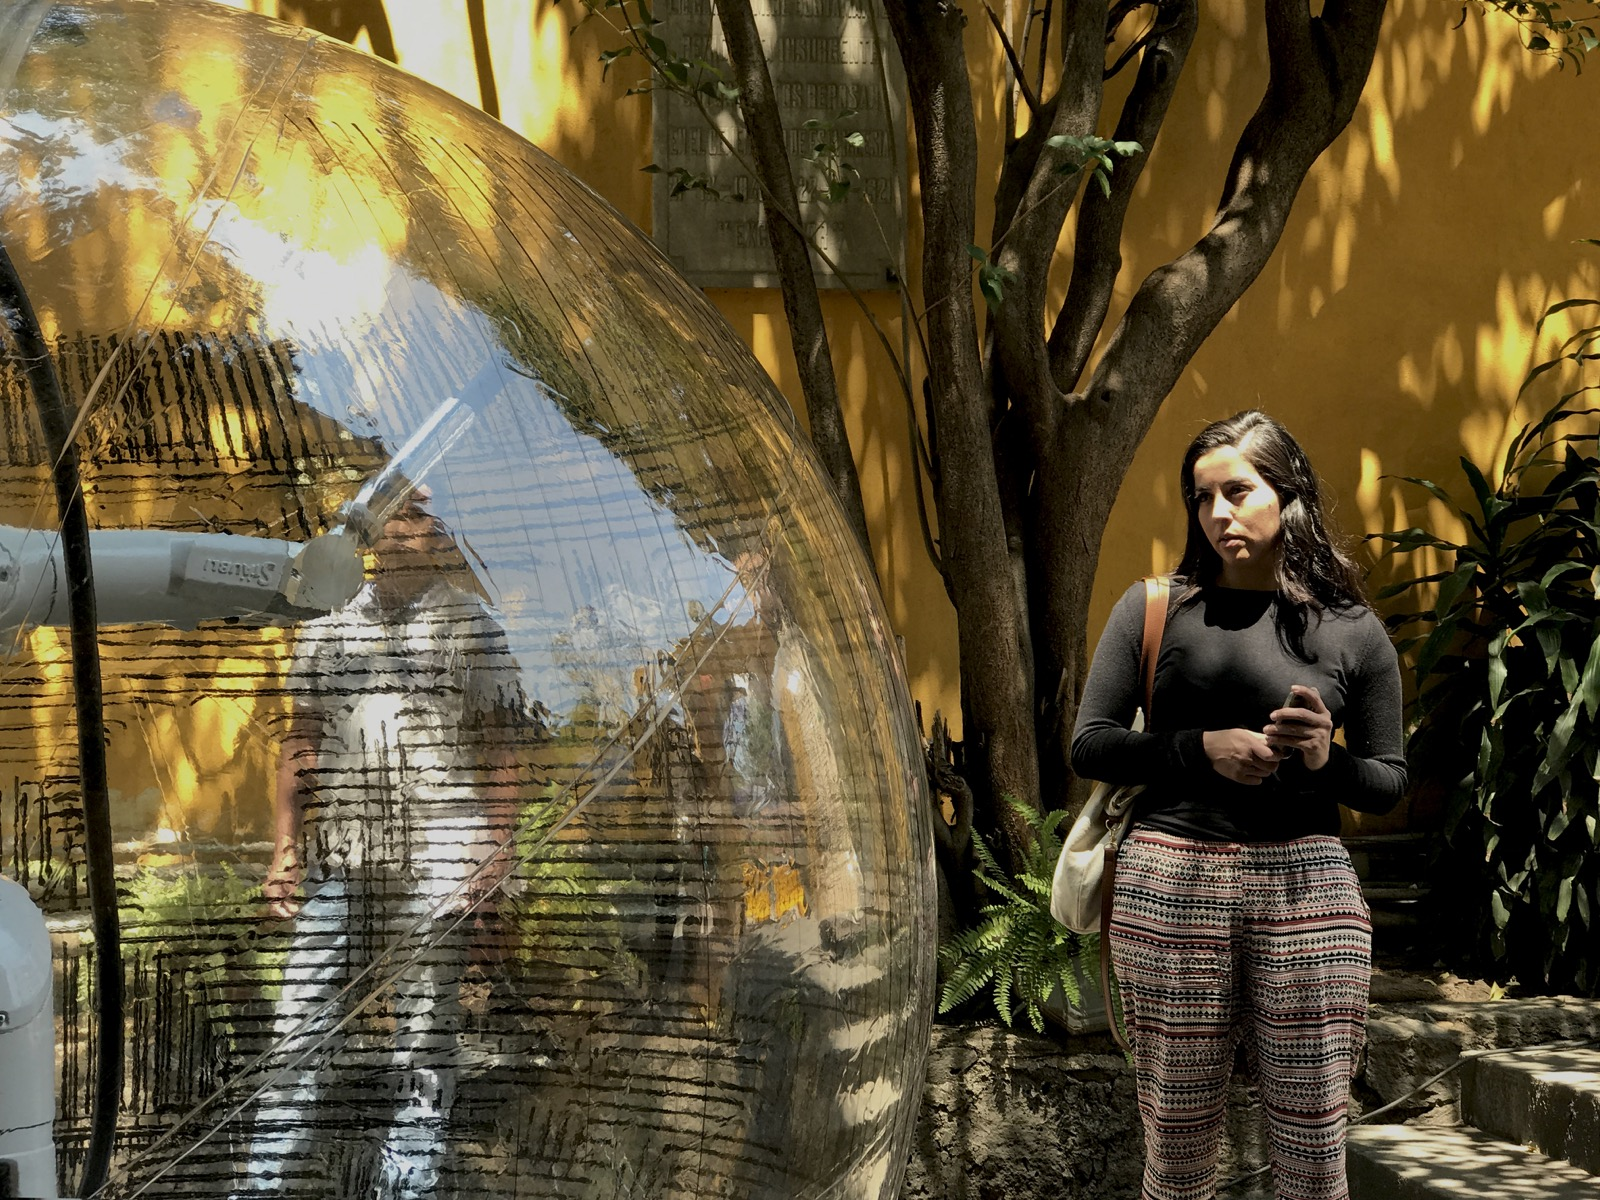 California Embraces Future >> Spheres of Influence – Drawing lifelines of the city / @curimebatliner